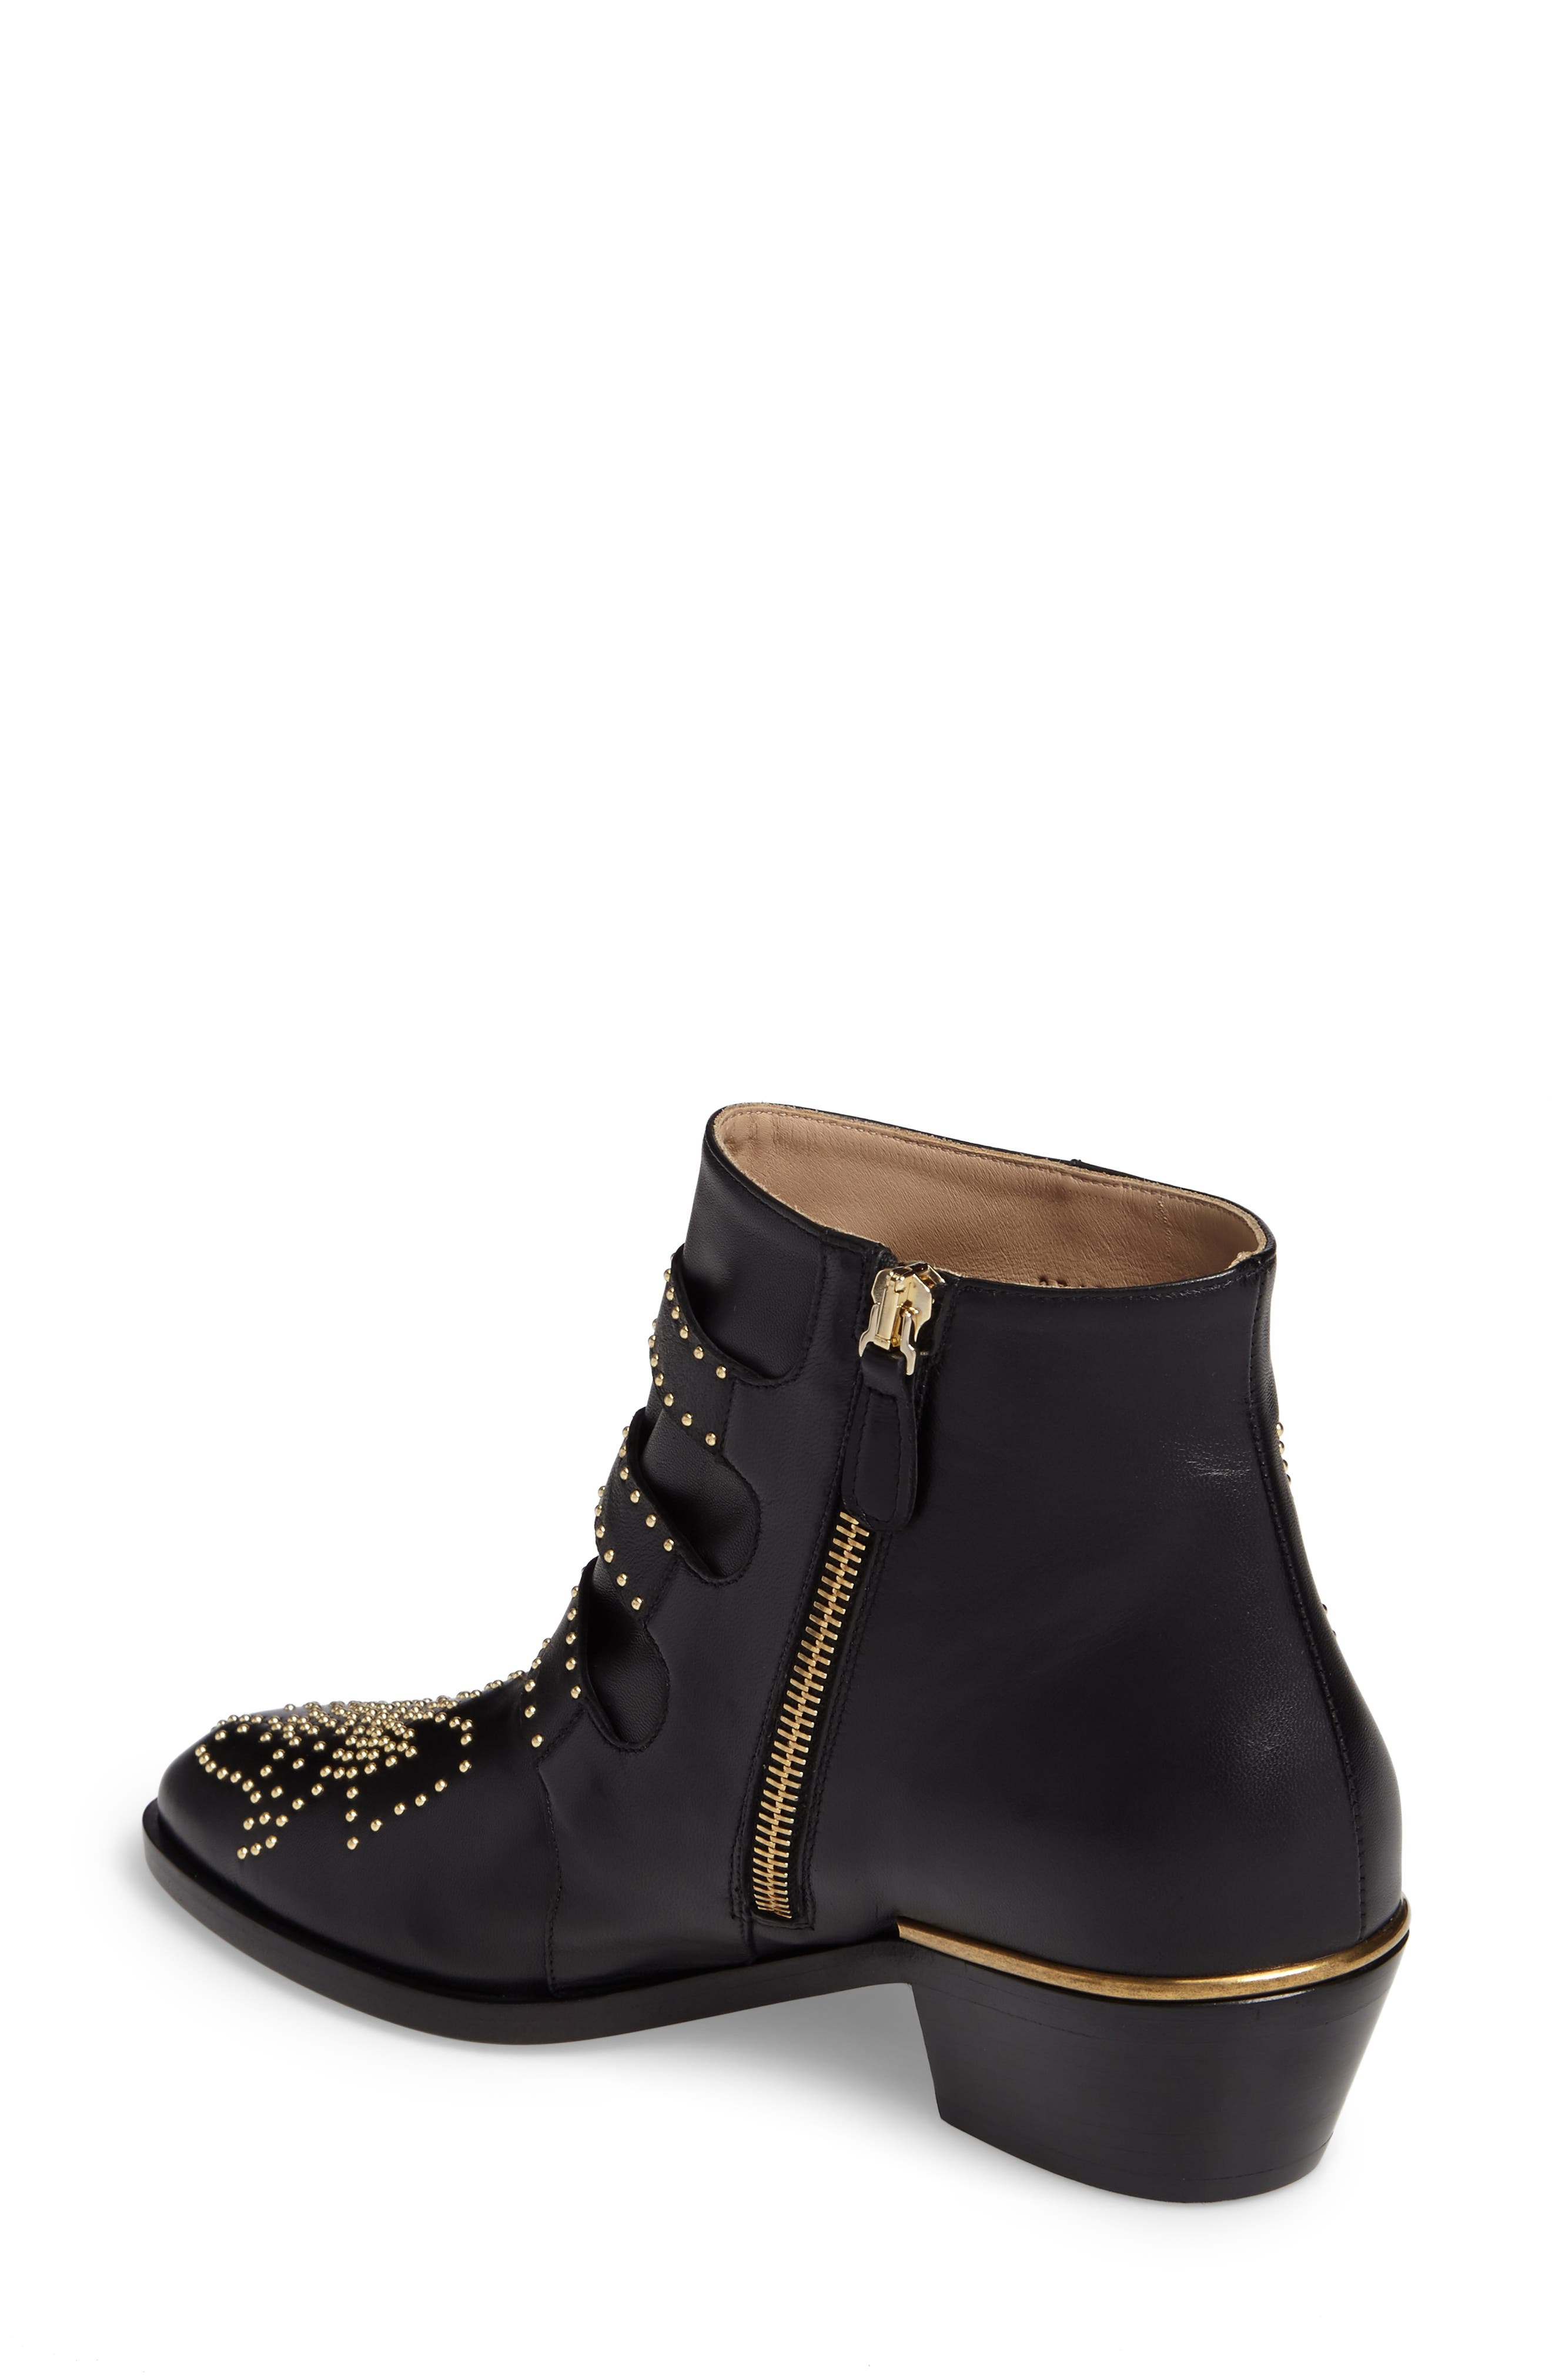 CHLOÉ, Susanna Stud Buckle Bootie, Alternate thumbnail 2, color, BLACK GOLD LEATHER